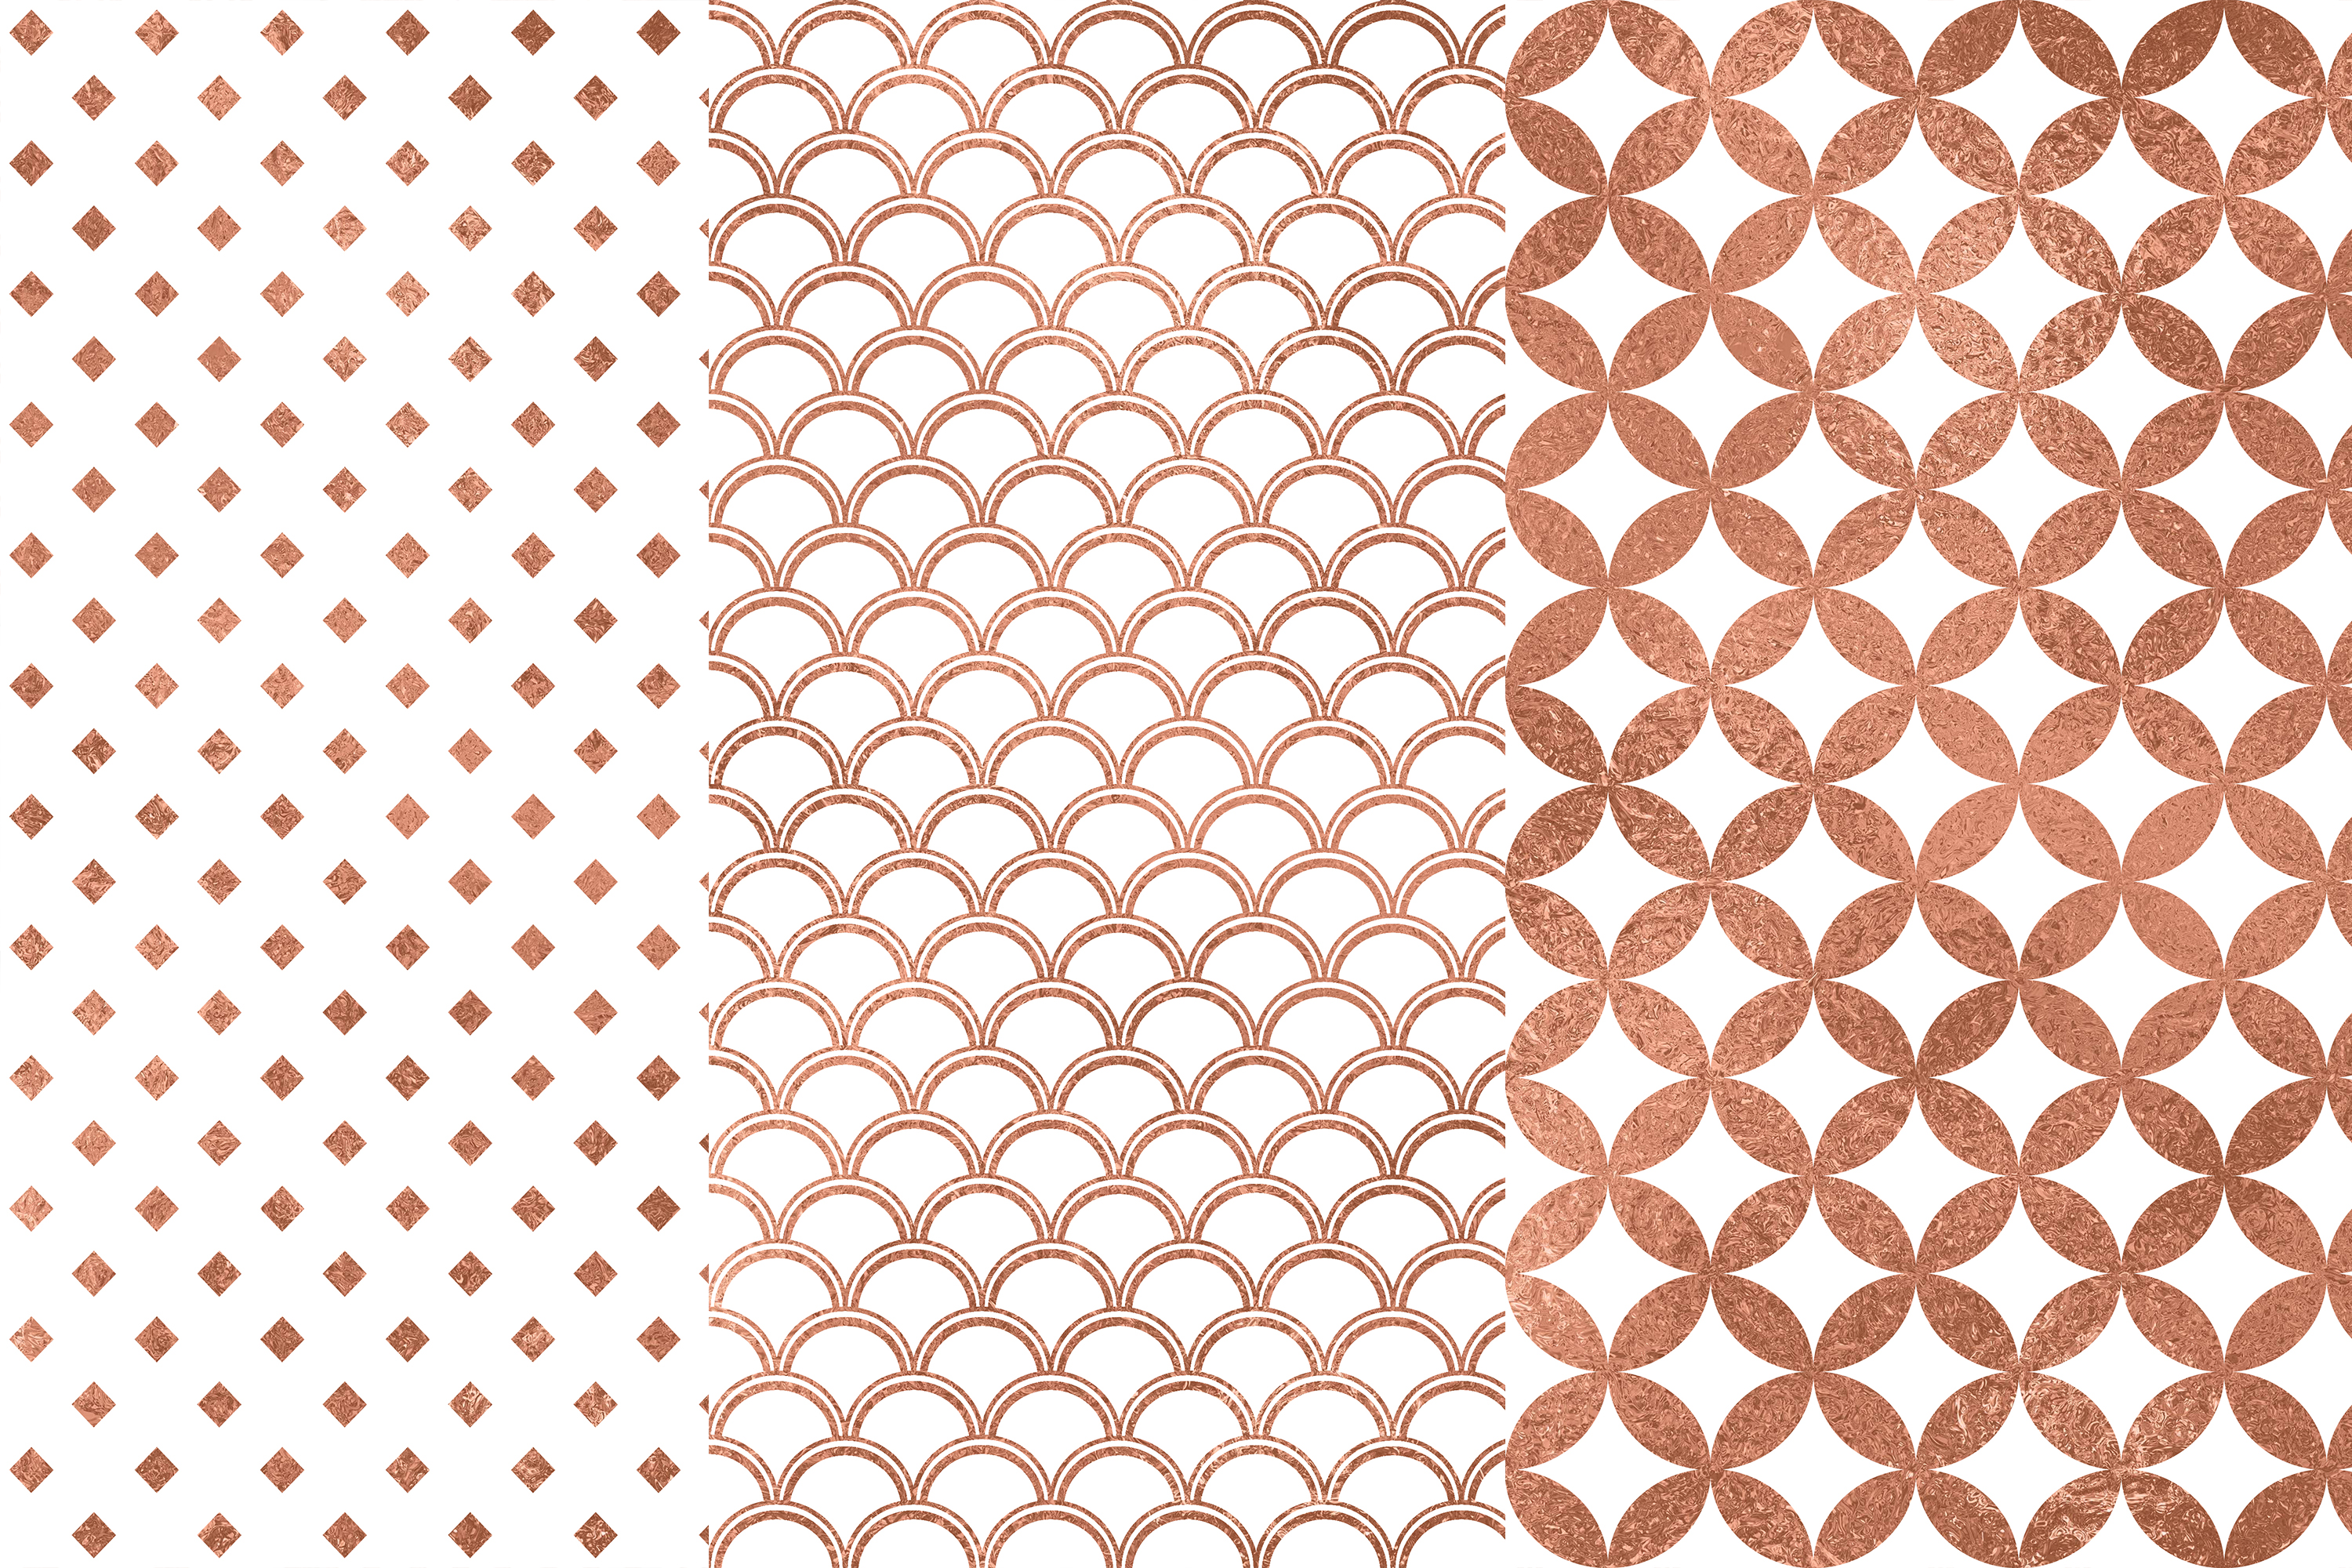 Rose Gold Seamless Pattern, Rose Gold Wedding Patterns, Gold example image 2